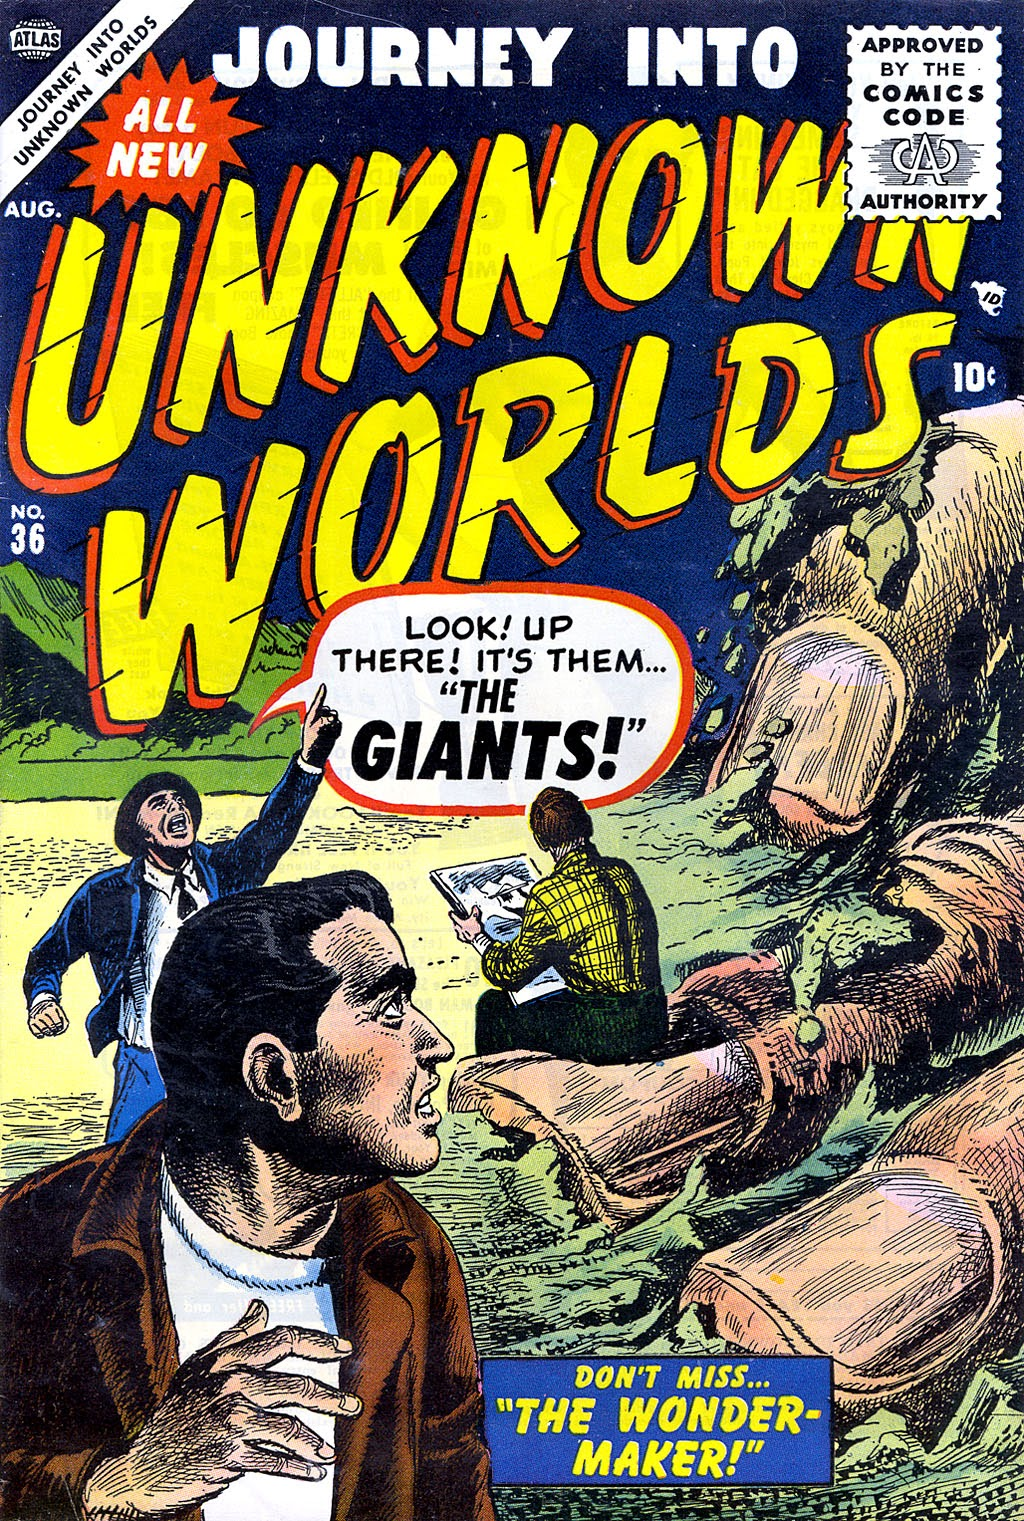 Journey Into Unknown Worlds (1950) issue 36 - Page 1